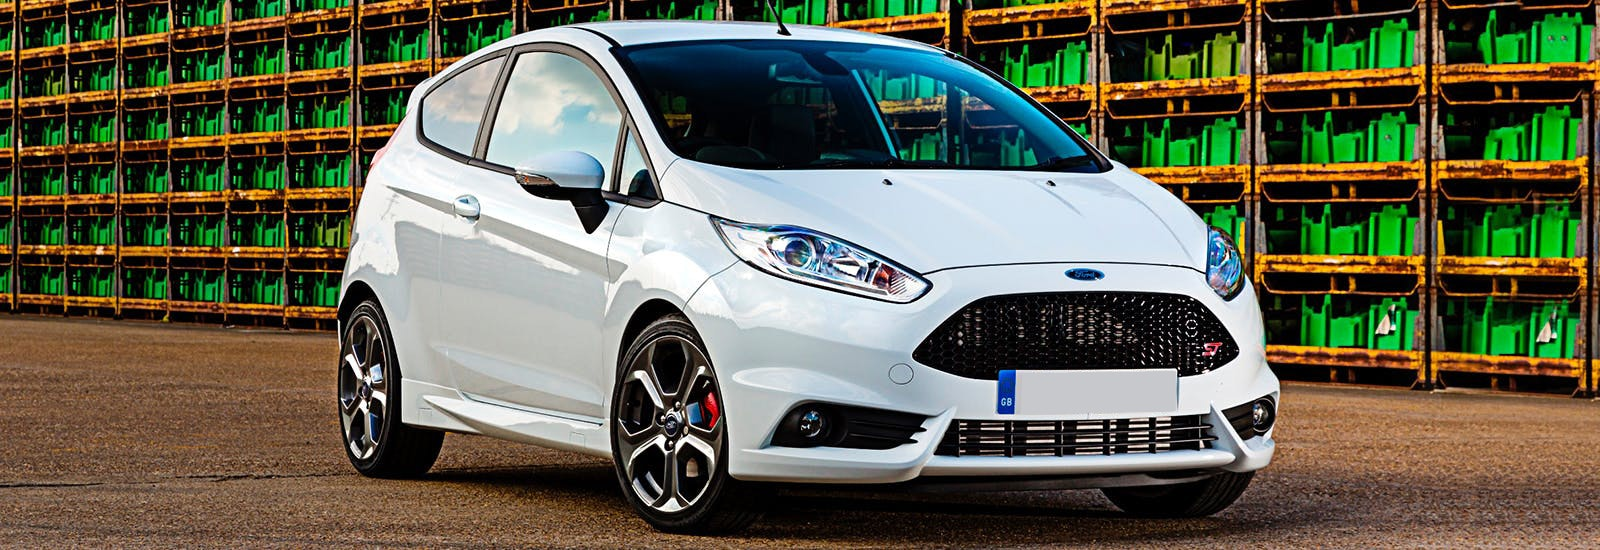 Ford Fiesta ST ST-2 & The best cars for £200 a month on finance   carwow markmcfarlin.com